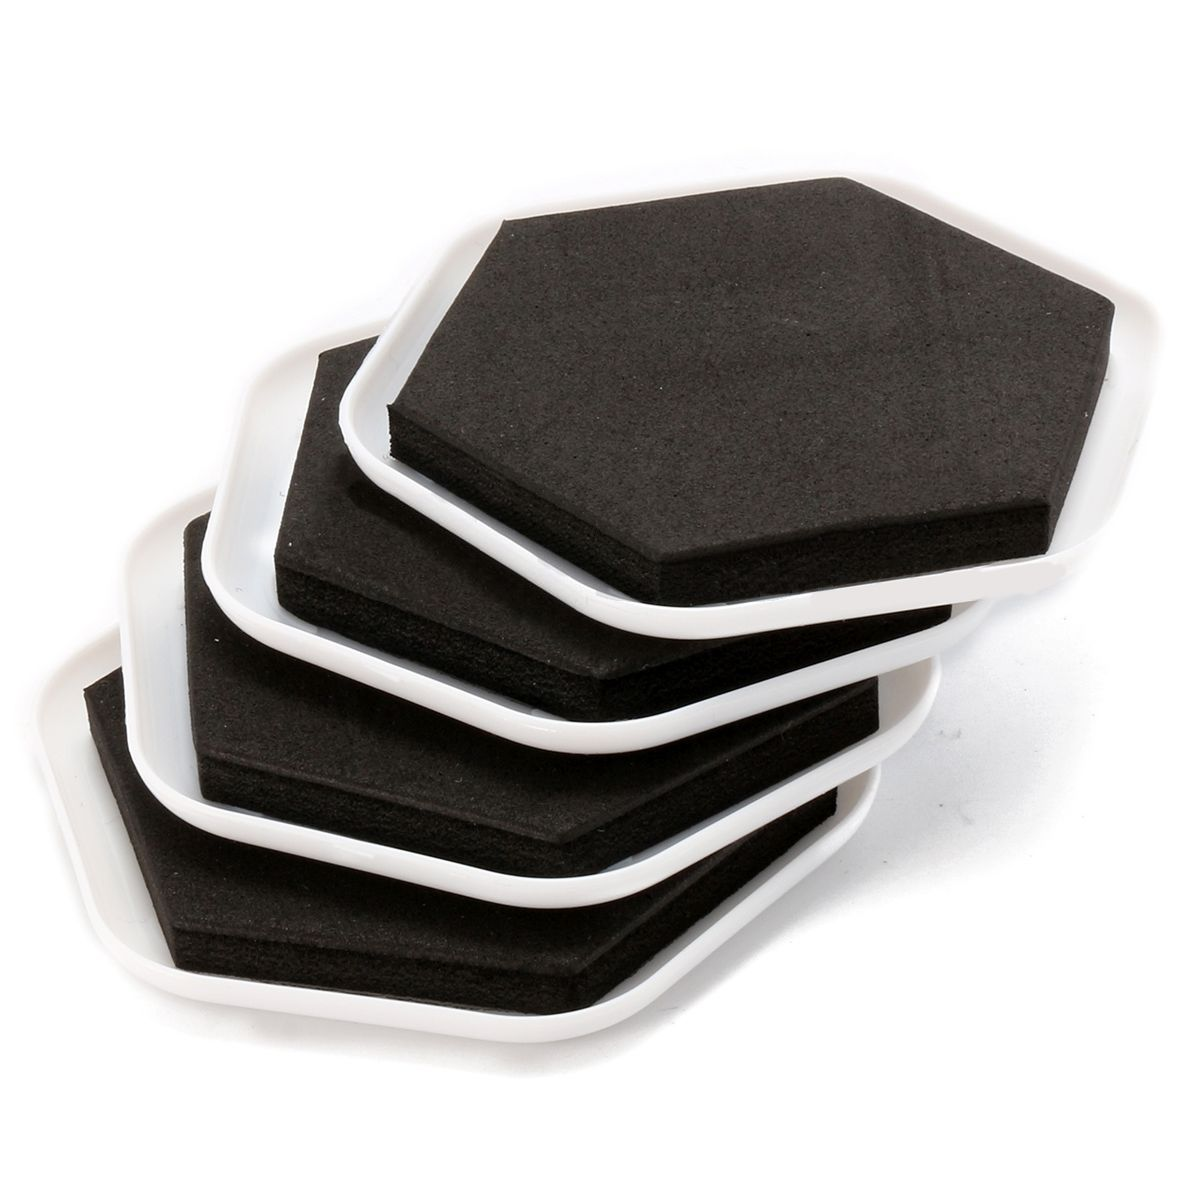 4Pcs Heavy Duty Furniture Moving Pad Home Moving Helper Floor Protectors 3.5cm/1.38 for Easy Moving Accessories